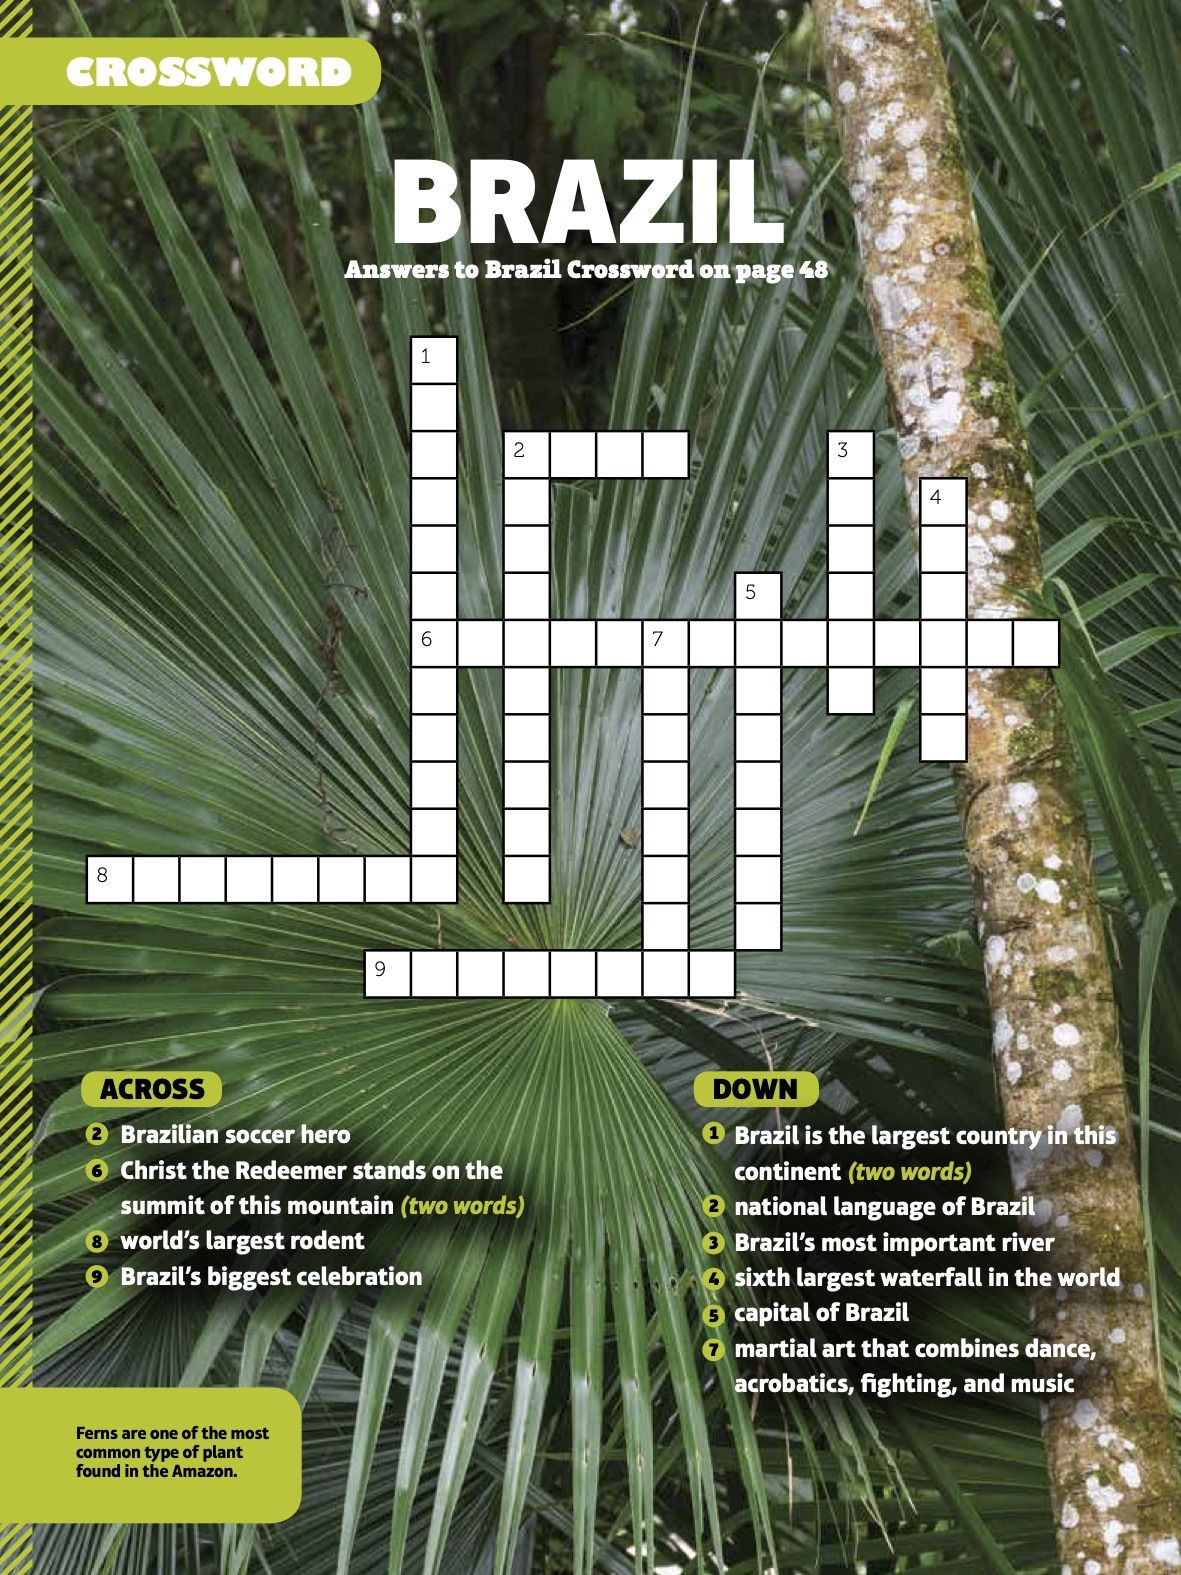 Brazil Themed Crossword Puzzle From Faces Magazine In